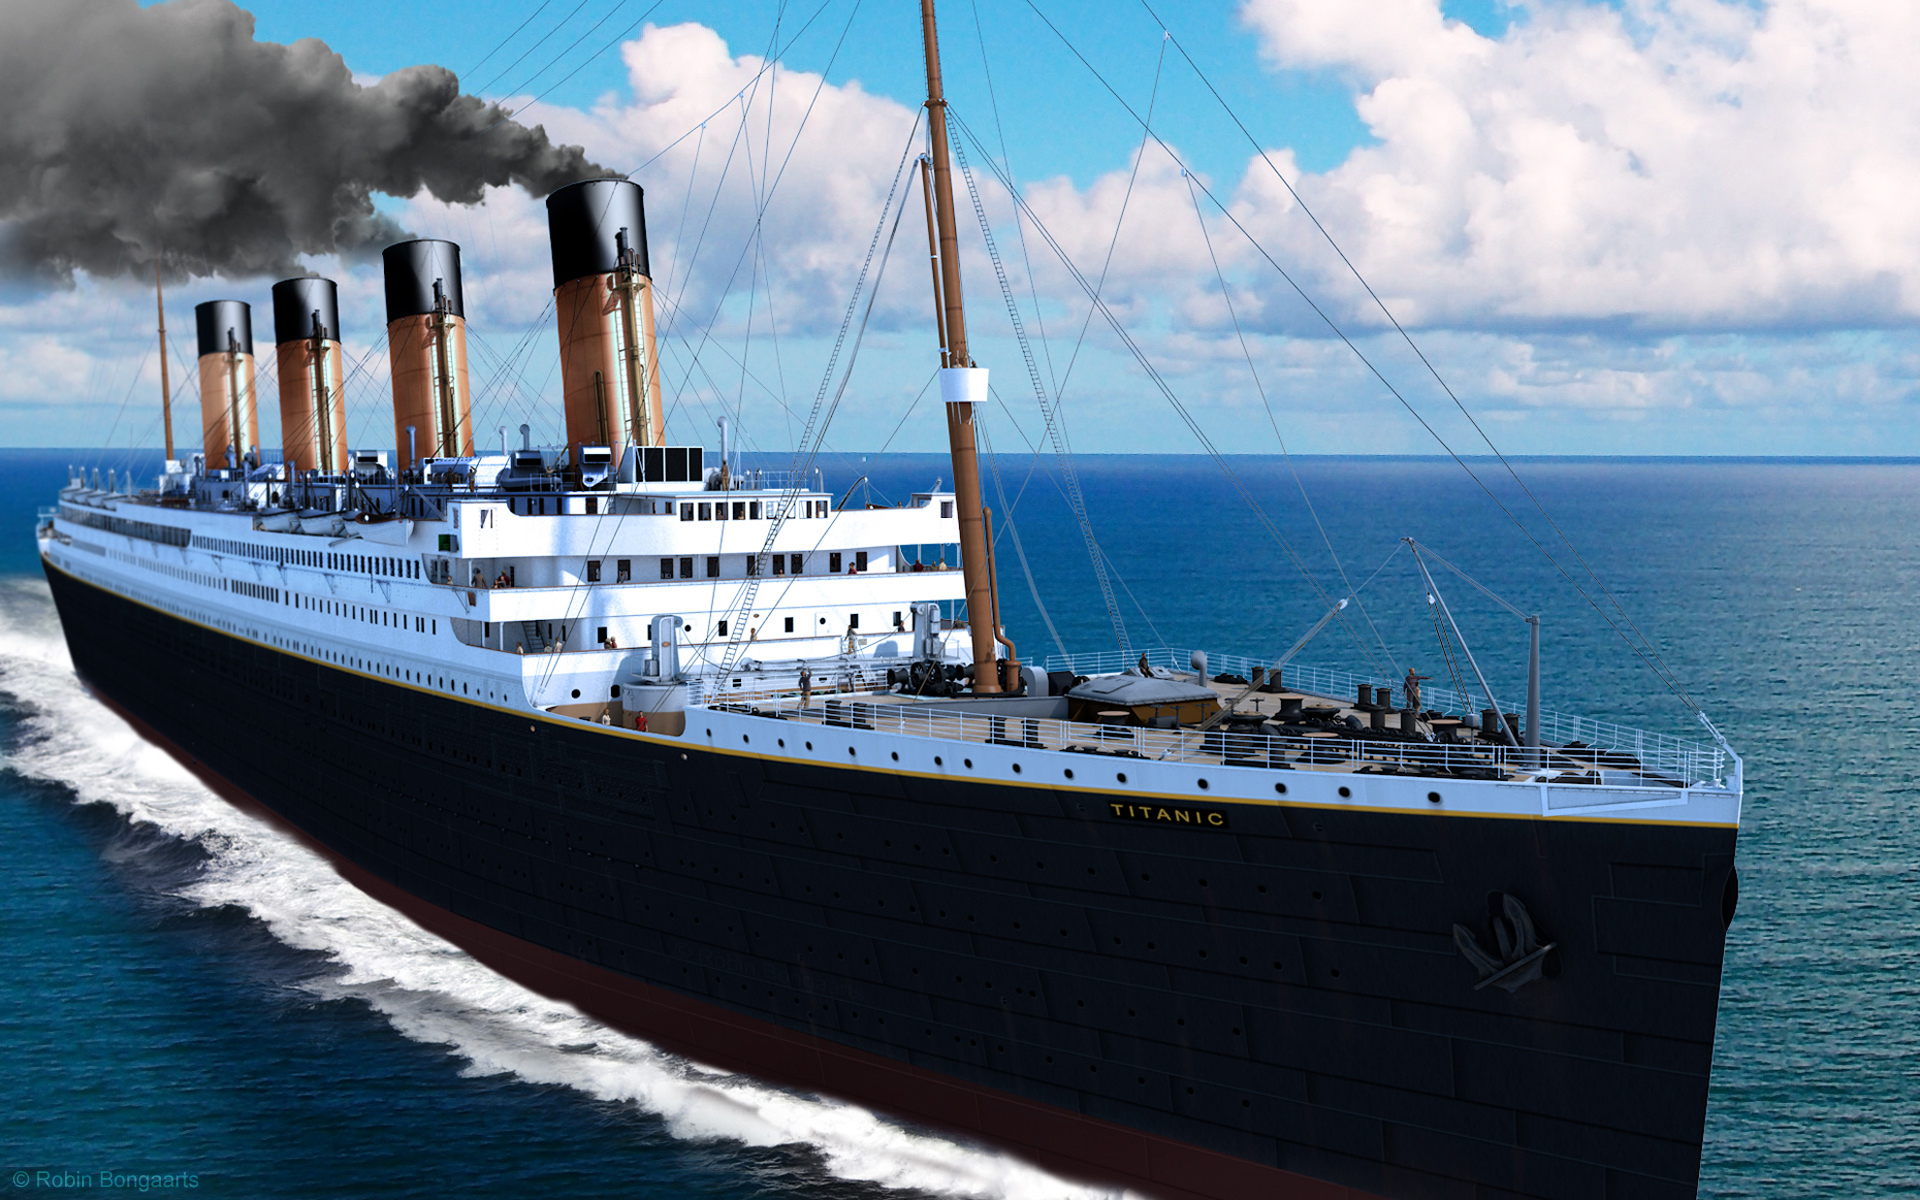 Titanic Love Wallpaper Hd : Titanic Full HD Wallpaper and Hintergrund 1920x1200 ID:699663